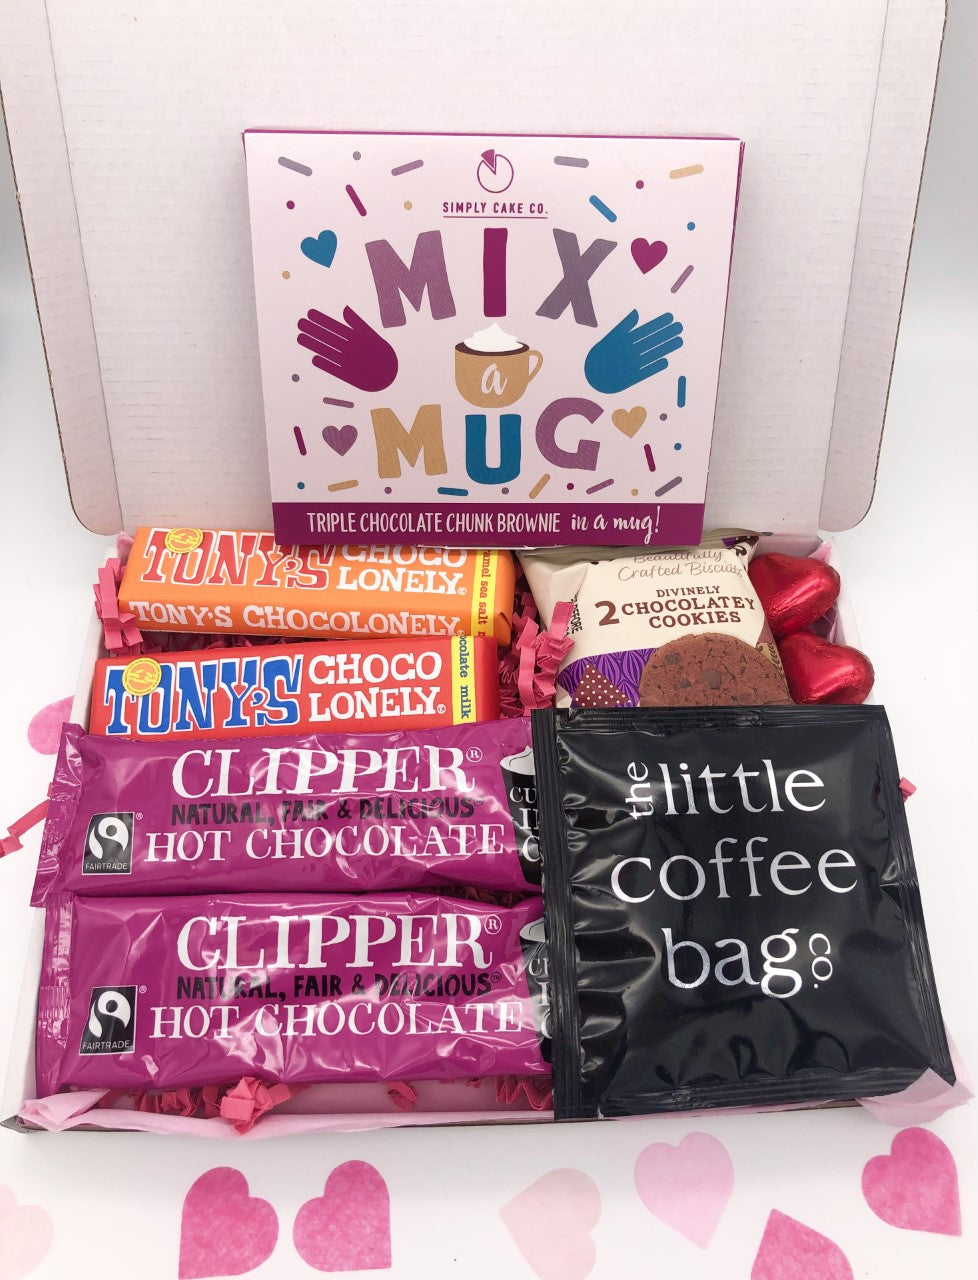 Chocolate Lover Box, Chocolate Gift Box, Care Package Of Chocolate